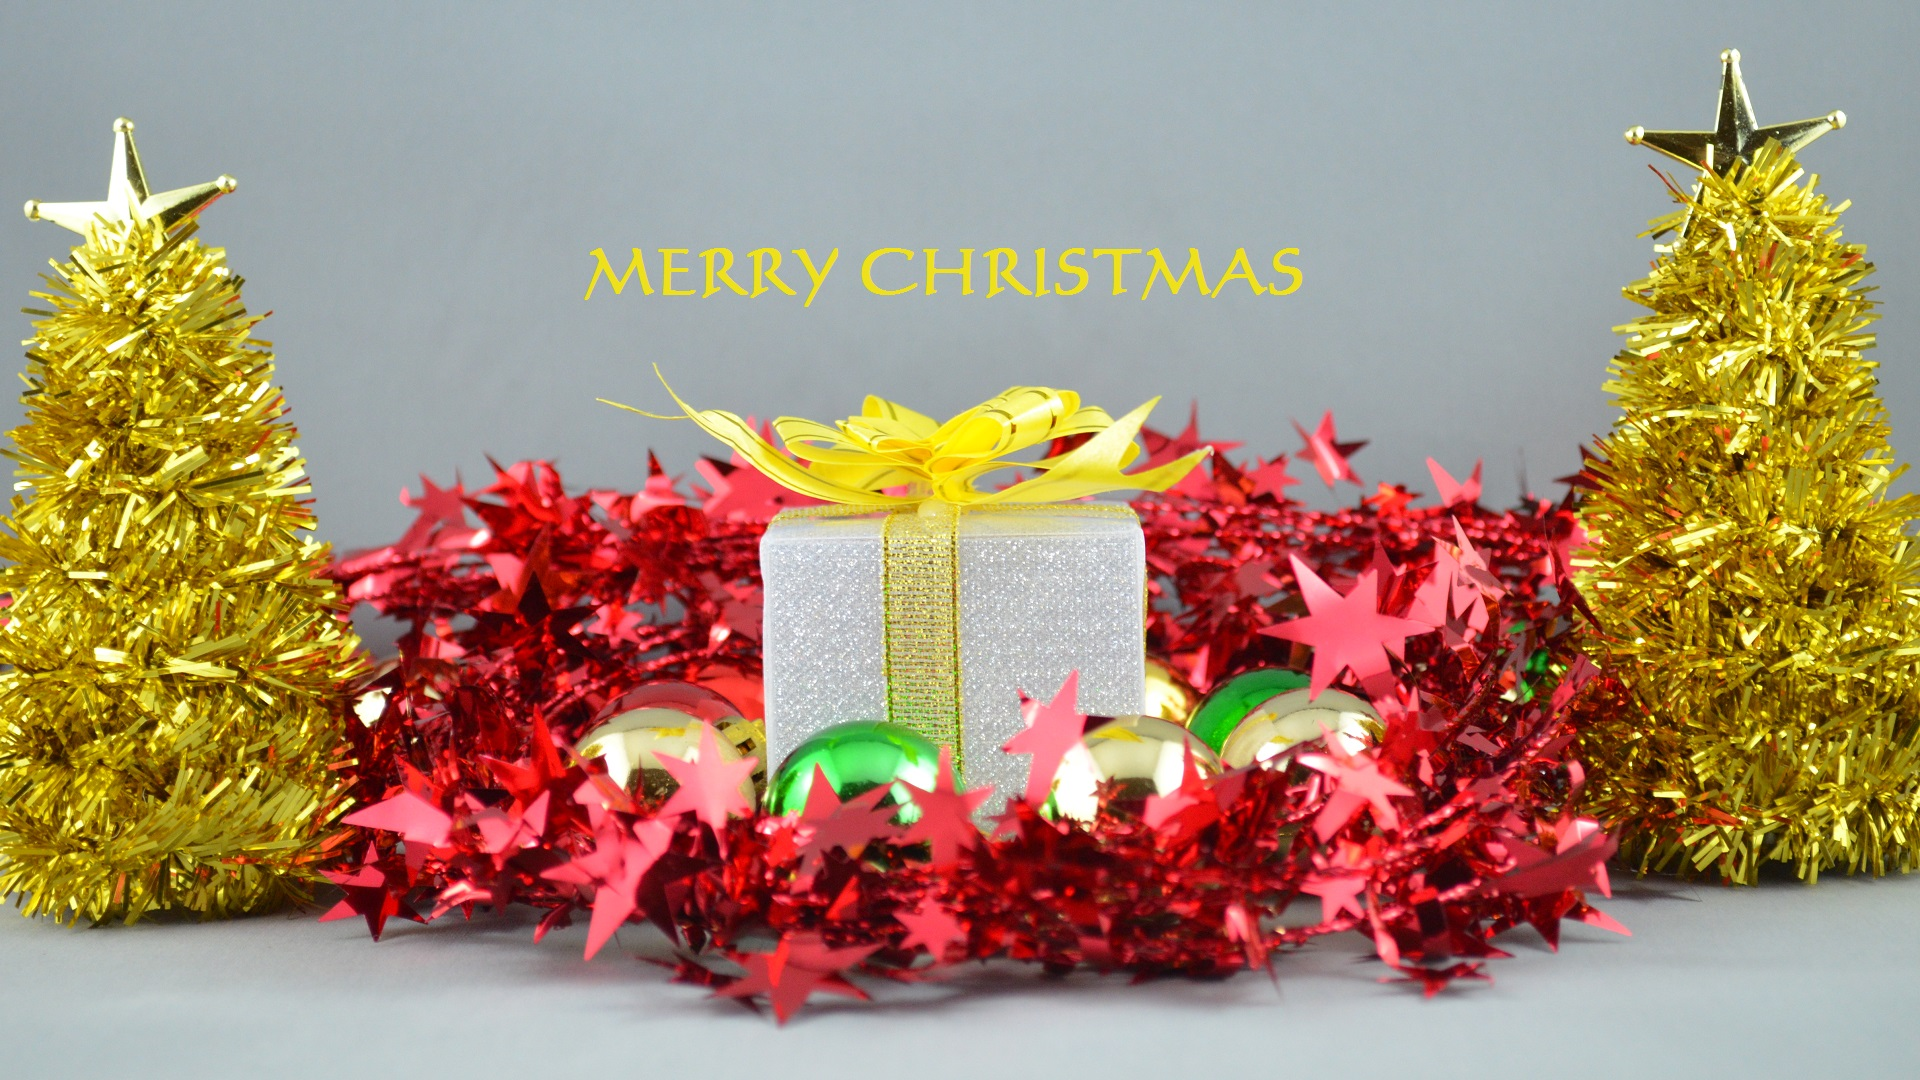 Christmas Decorations Full HD Wallpaper And Background Image